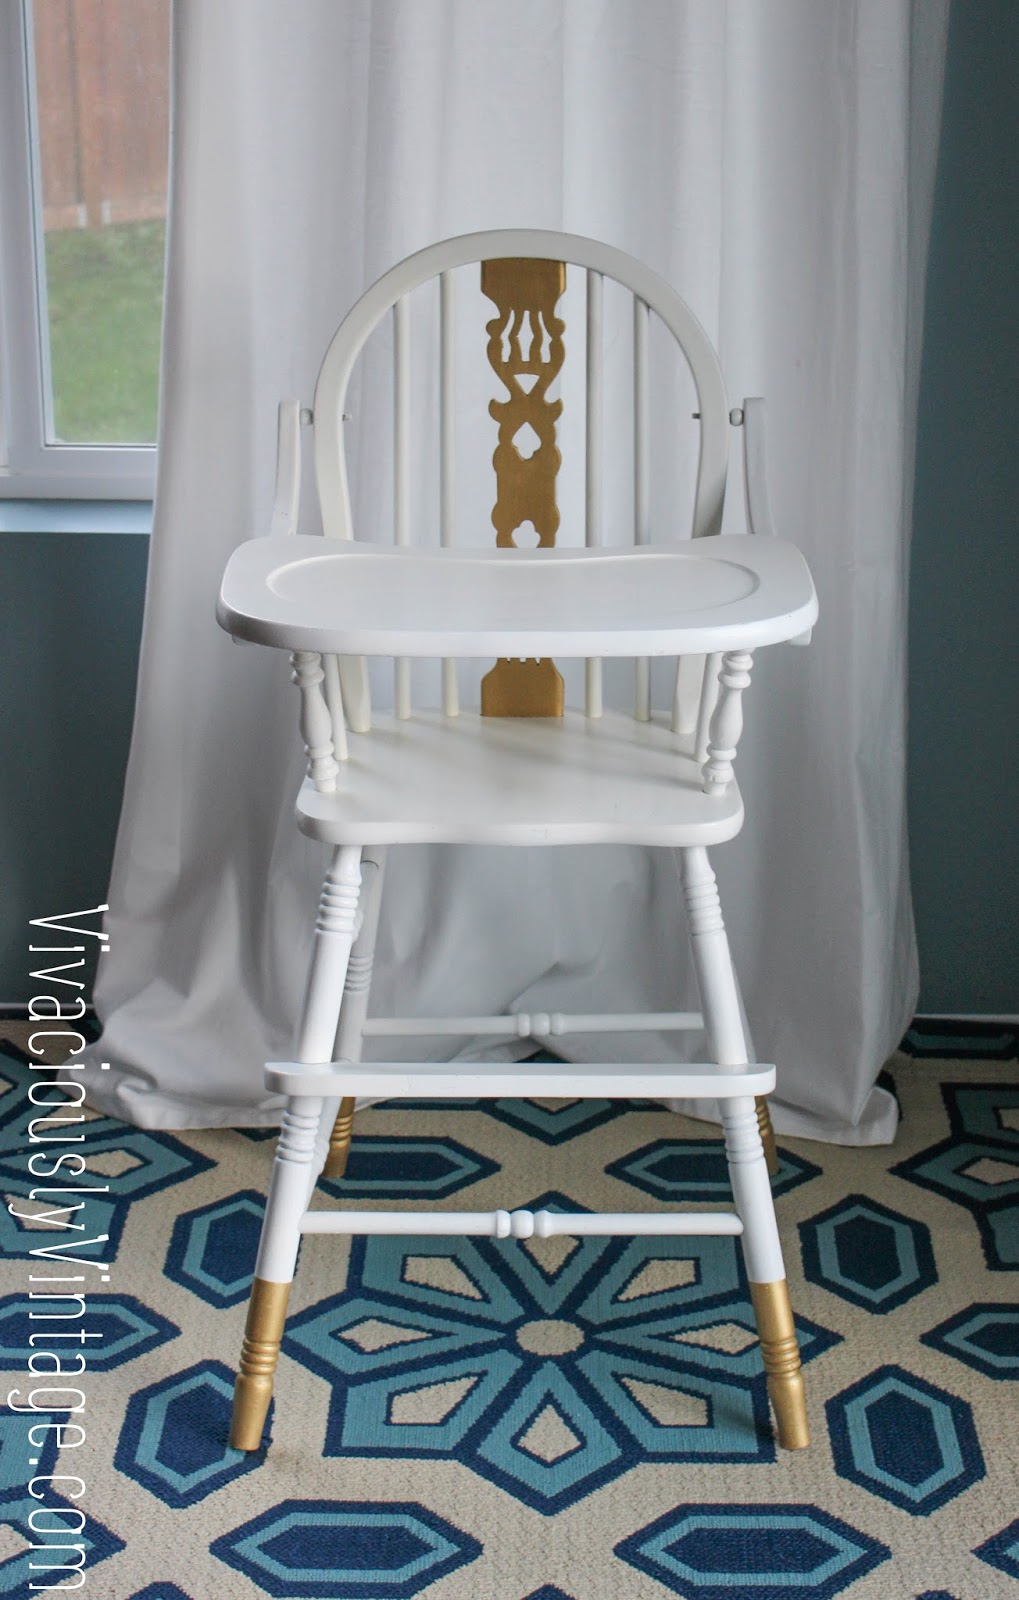 Vintage wooden high chair - Gold And White Vintage Painted Wooden High Chair